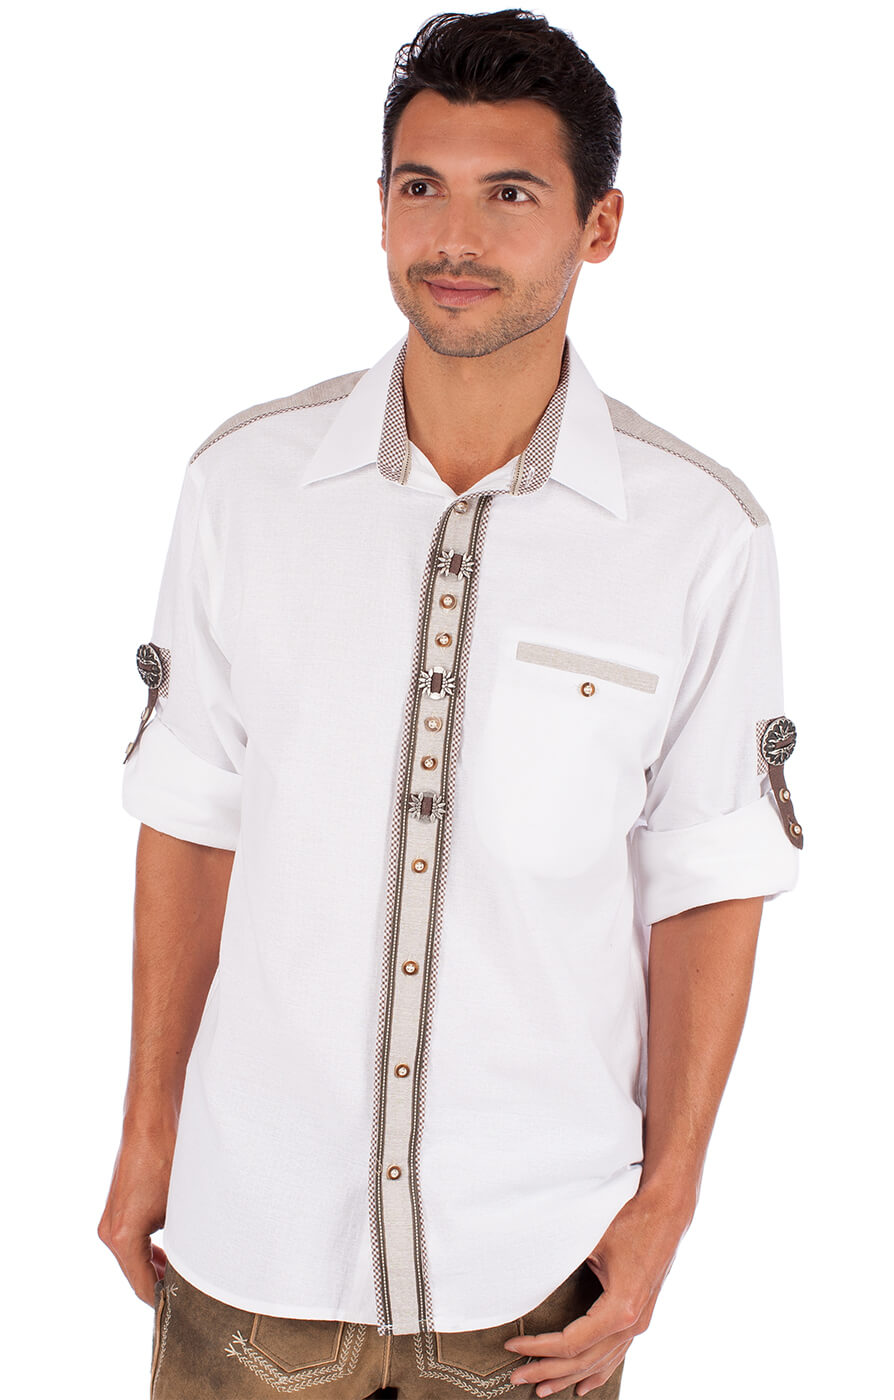 German traditional shirt Filando white von OS-Trachten